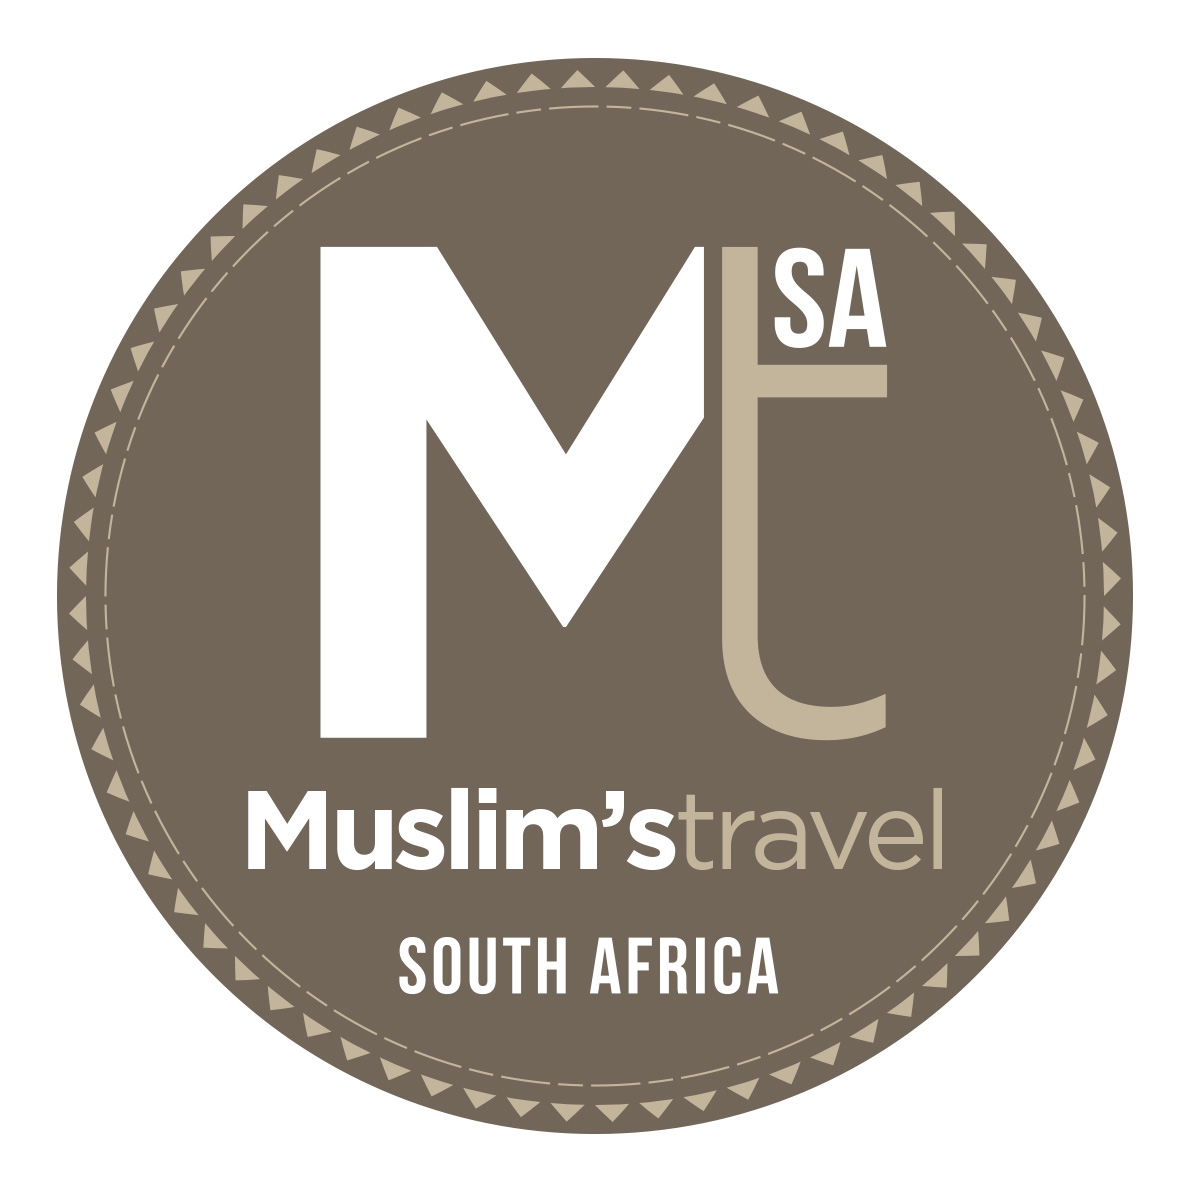 Muslims Travel SA